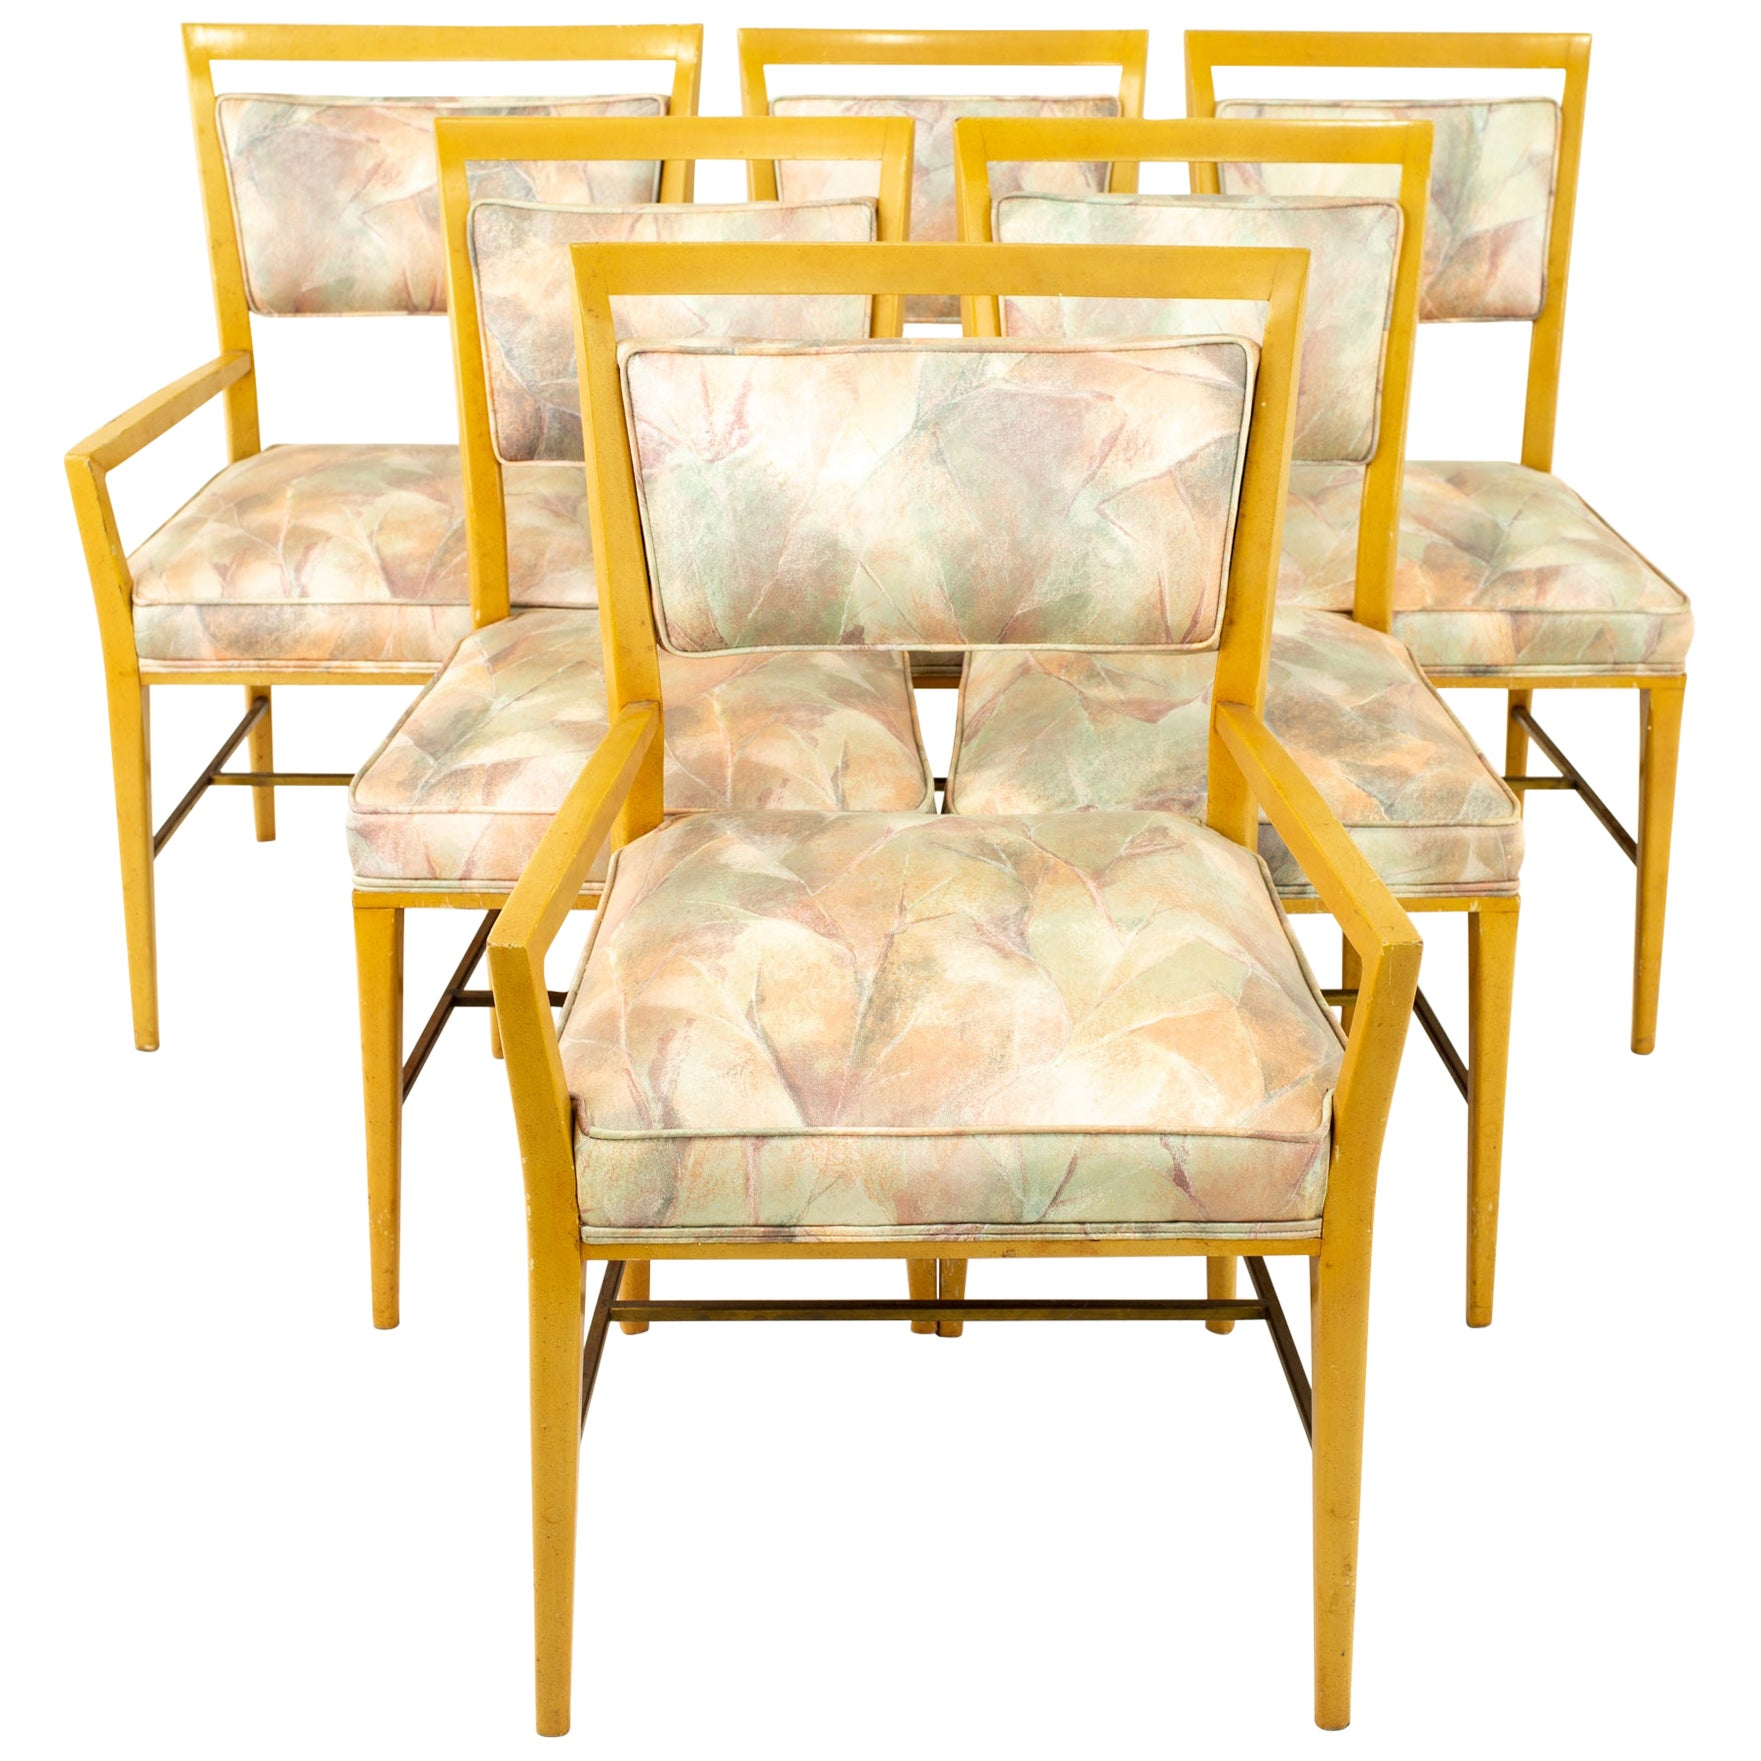 Paul McCobb Mid Century Blonde Upholstered Dining Chairs, Set of 6